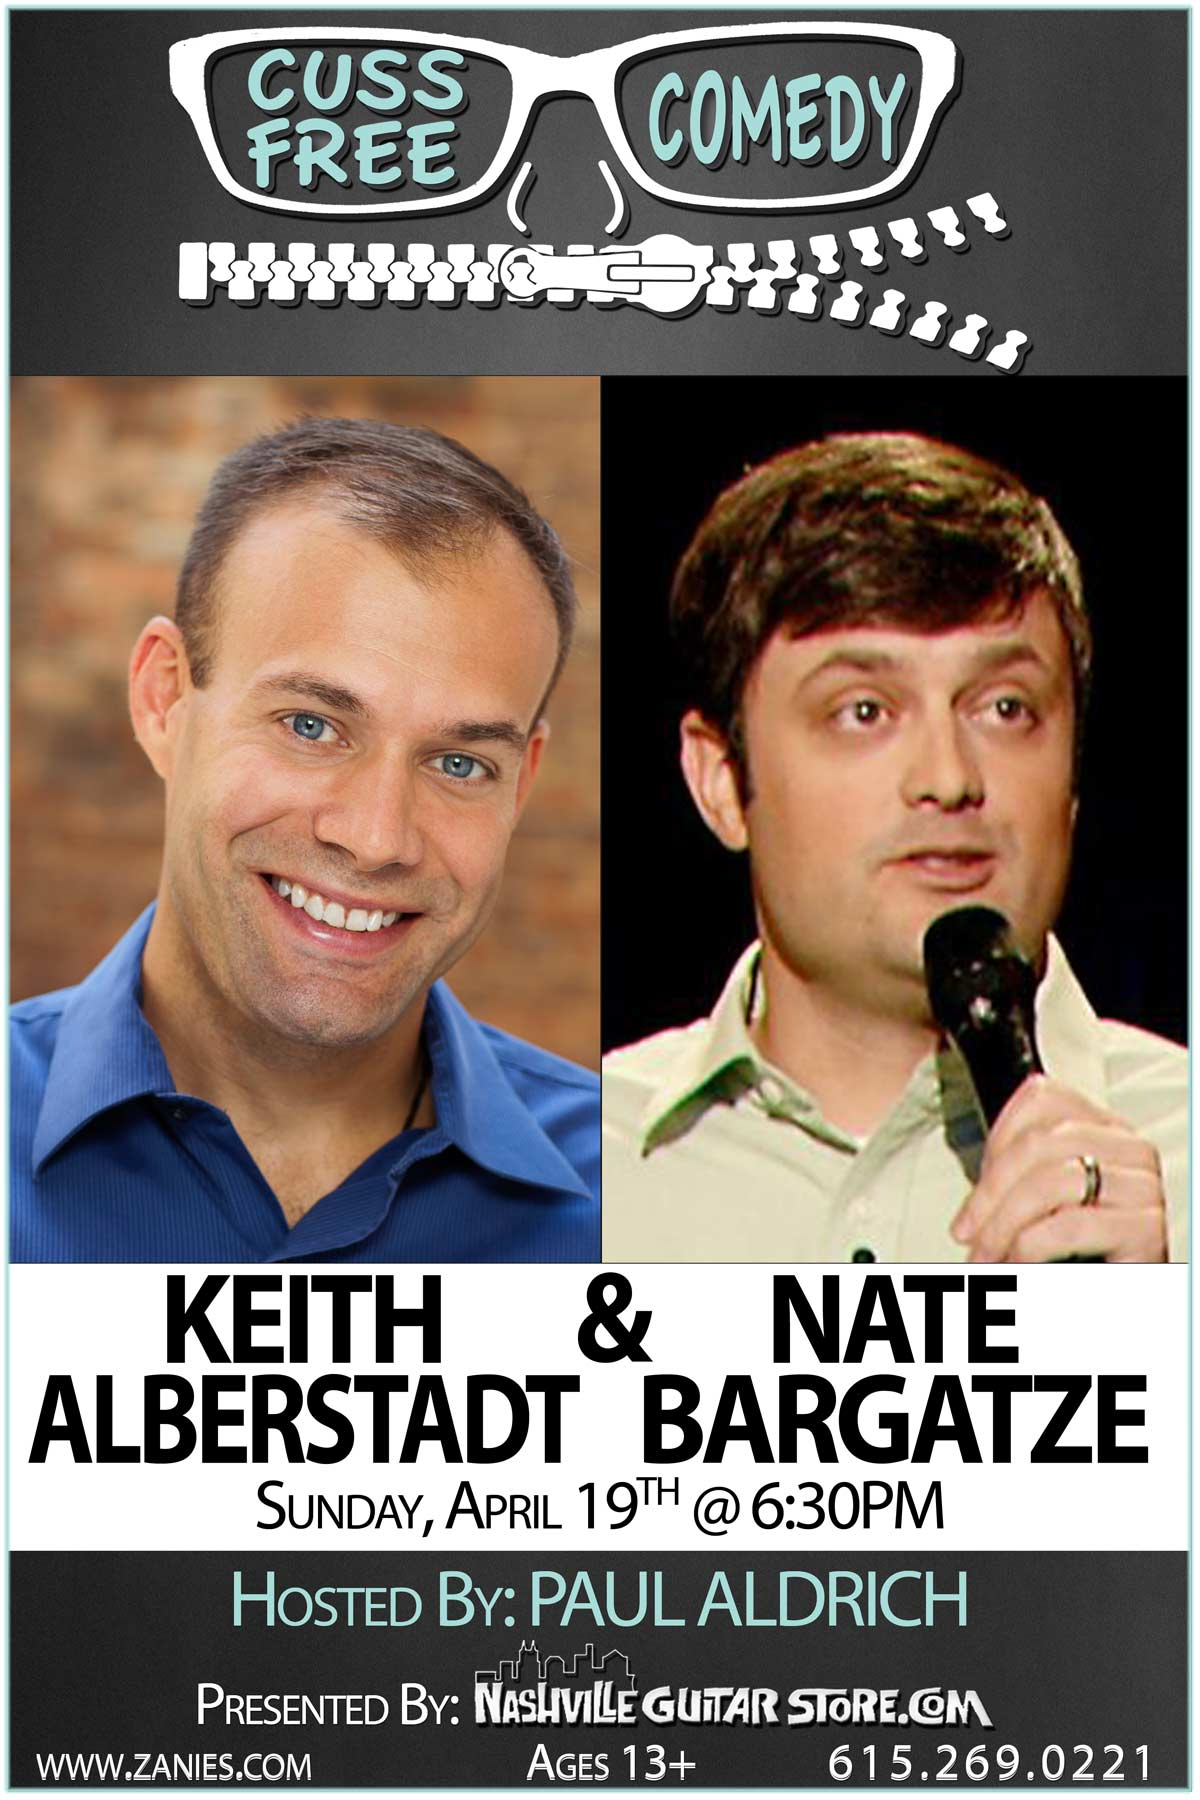 Cuss Free Comedy: Keith Alberstadt and Nate Bargatze Sunday, April 29, 2015 at 6:30PM Live at Zanies Comedy Club